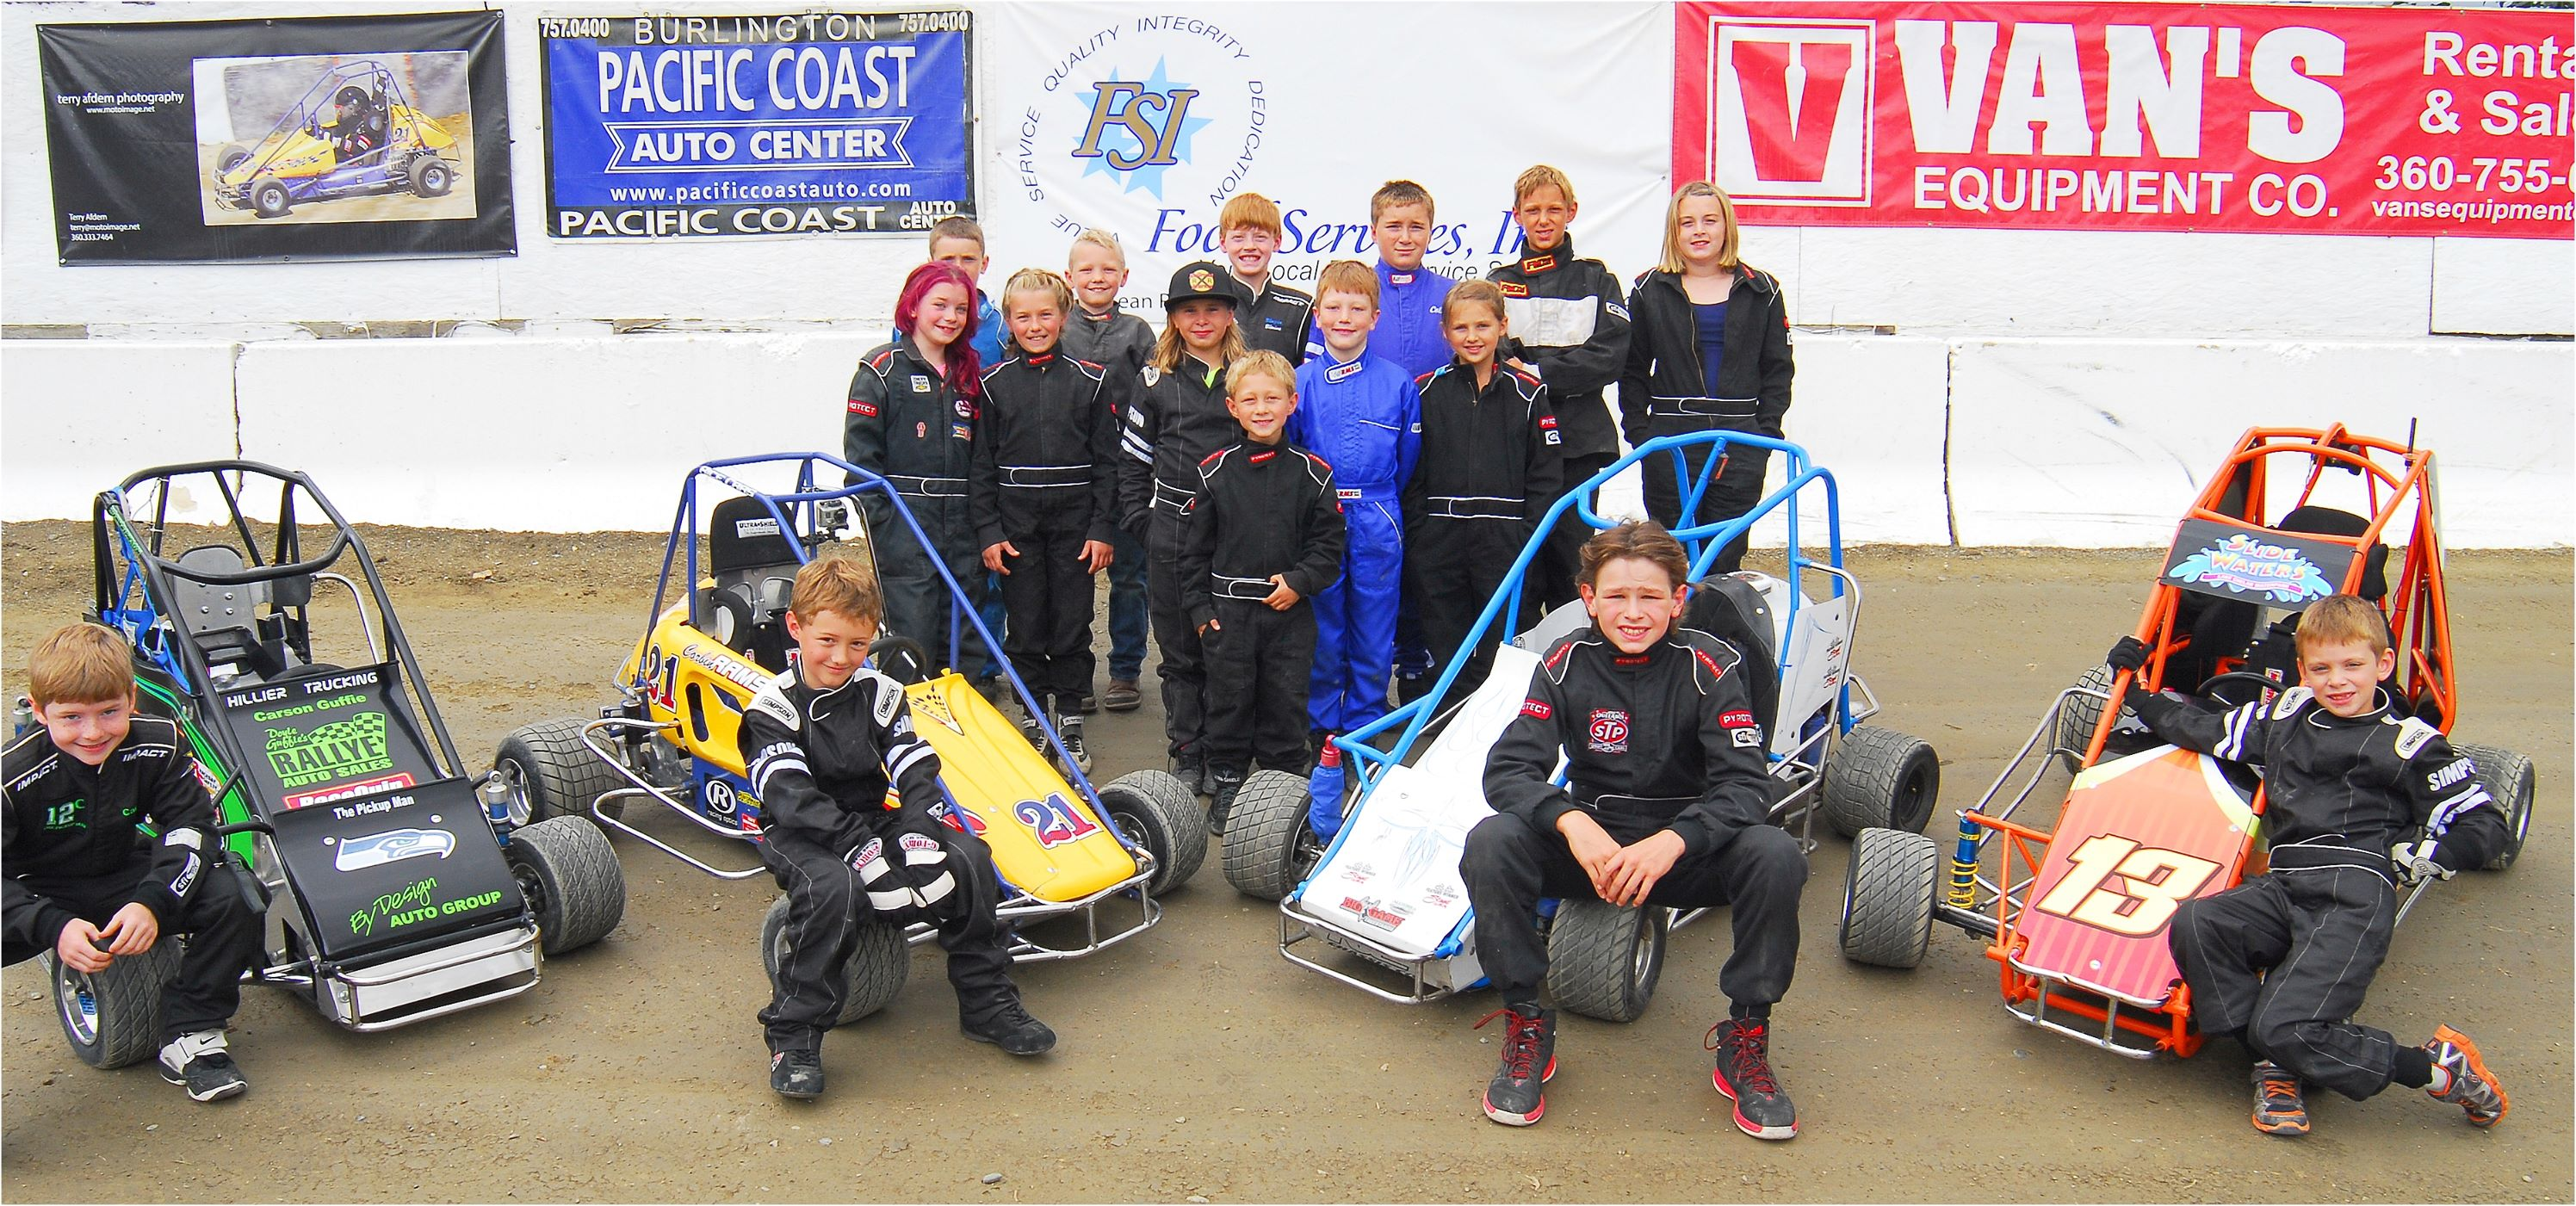 Midget racing in the northwest